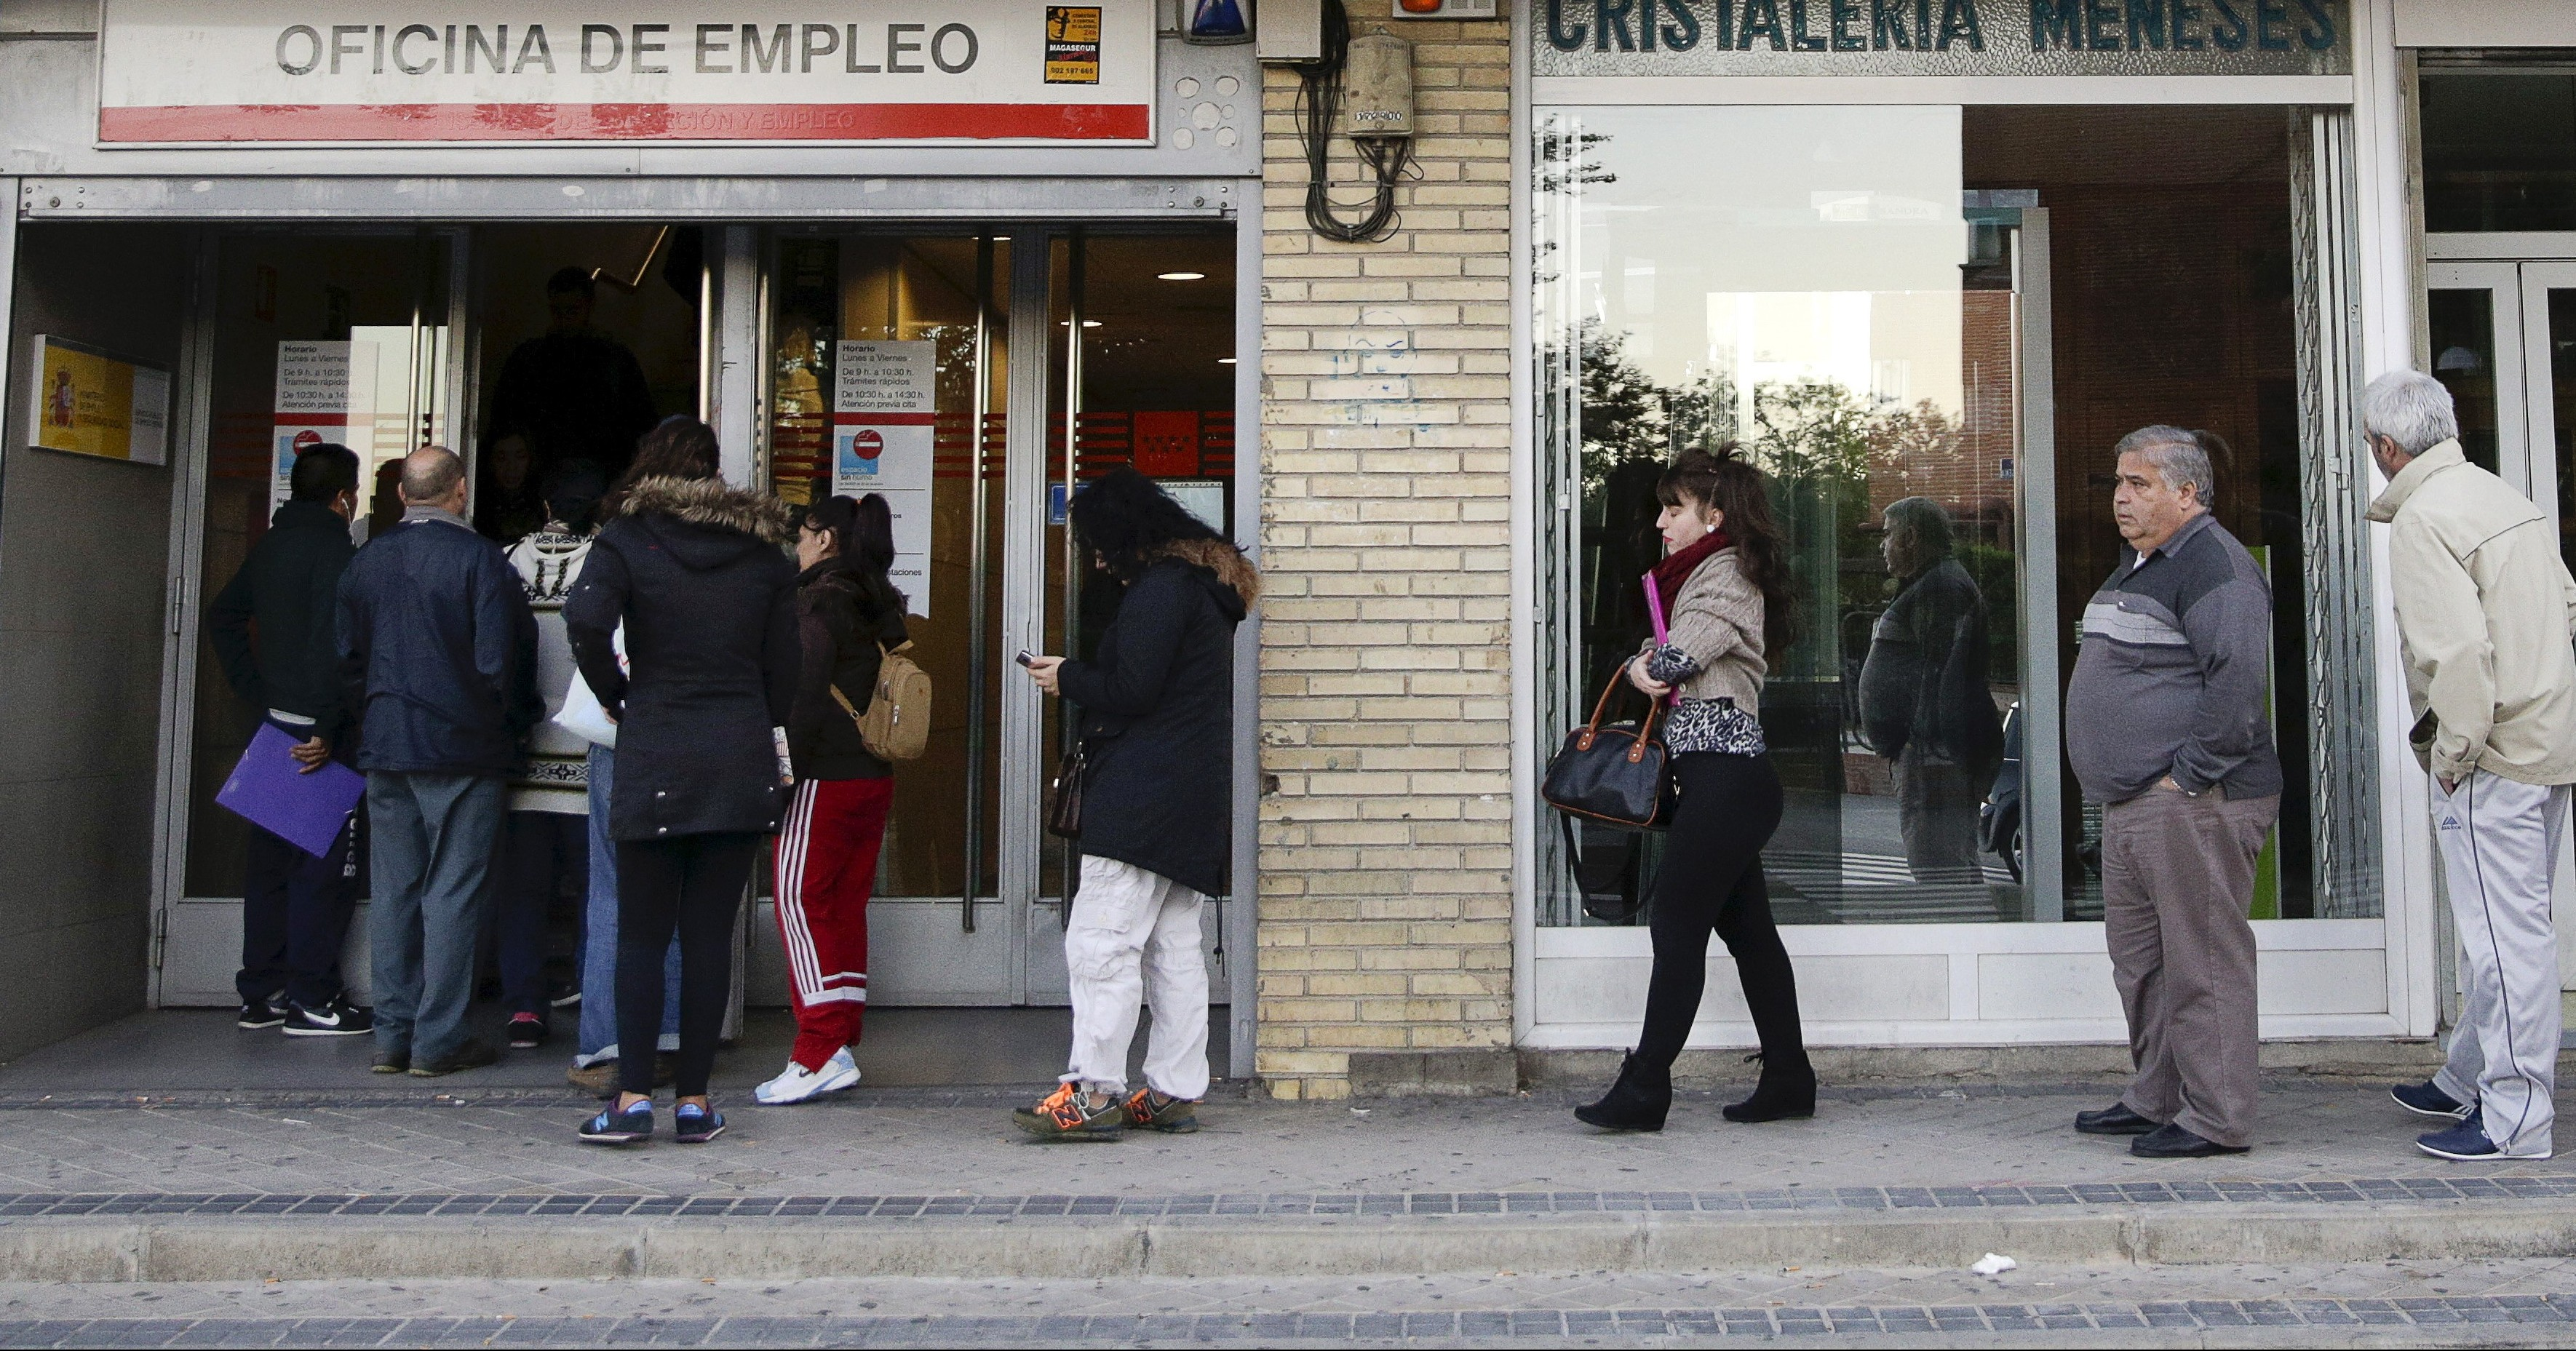 People queue outside a government-run job centre in Madrid, Spain, October 22, 2015. Spain's unemployment rate fell to its lowest level in over four years in the third quarter at 21.2 percent although the pace of job creation slowed slightly just weeks ahead of a closely fought general election. Frustration over an enduring jobs crisis will weigh on the Dec. 20 vote, with many Spaniards divided over whether their prospects are improving after a double-dip recession that sent unemployment soaring to nearly 27 percent in 2013.  REUTERS/Andrea Comas - RTS5LKX